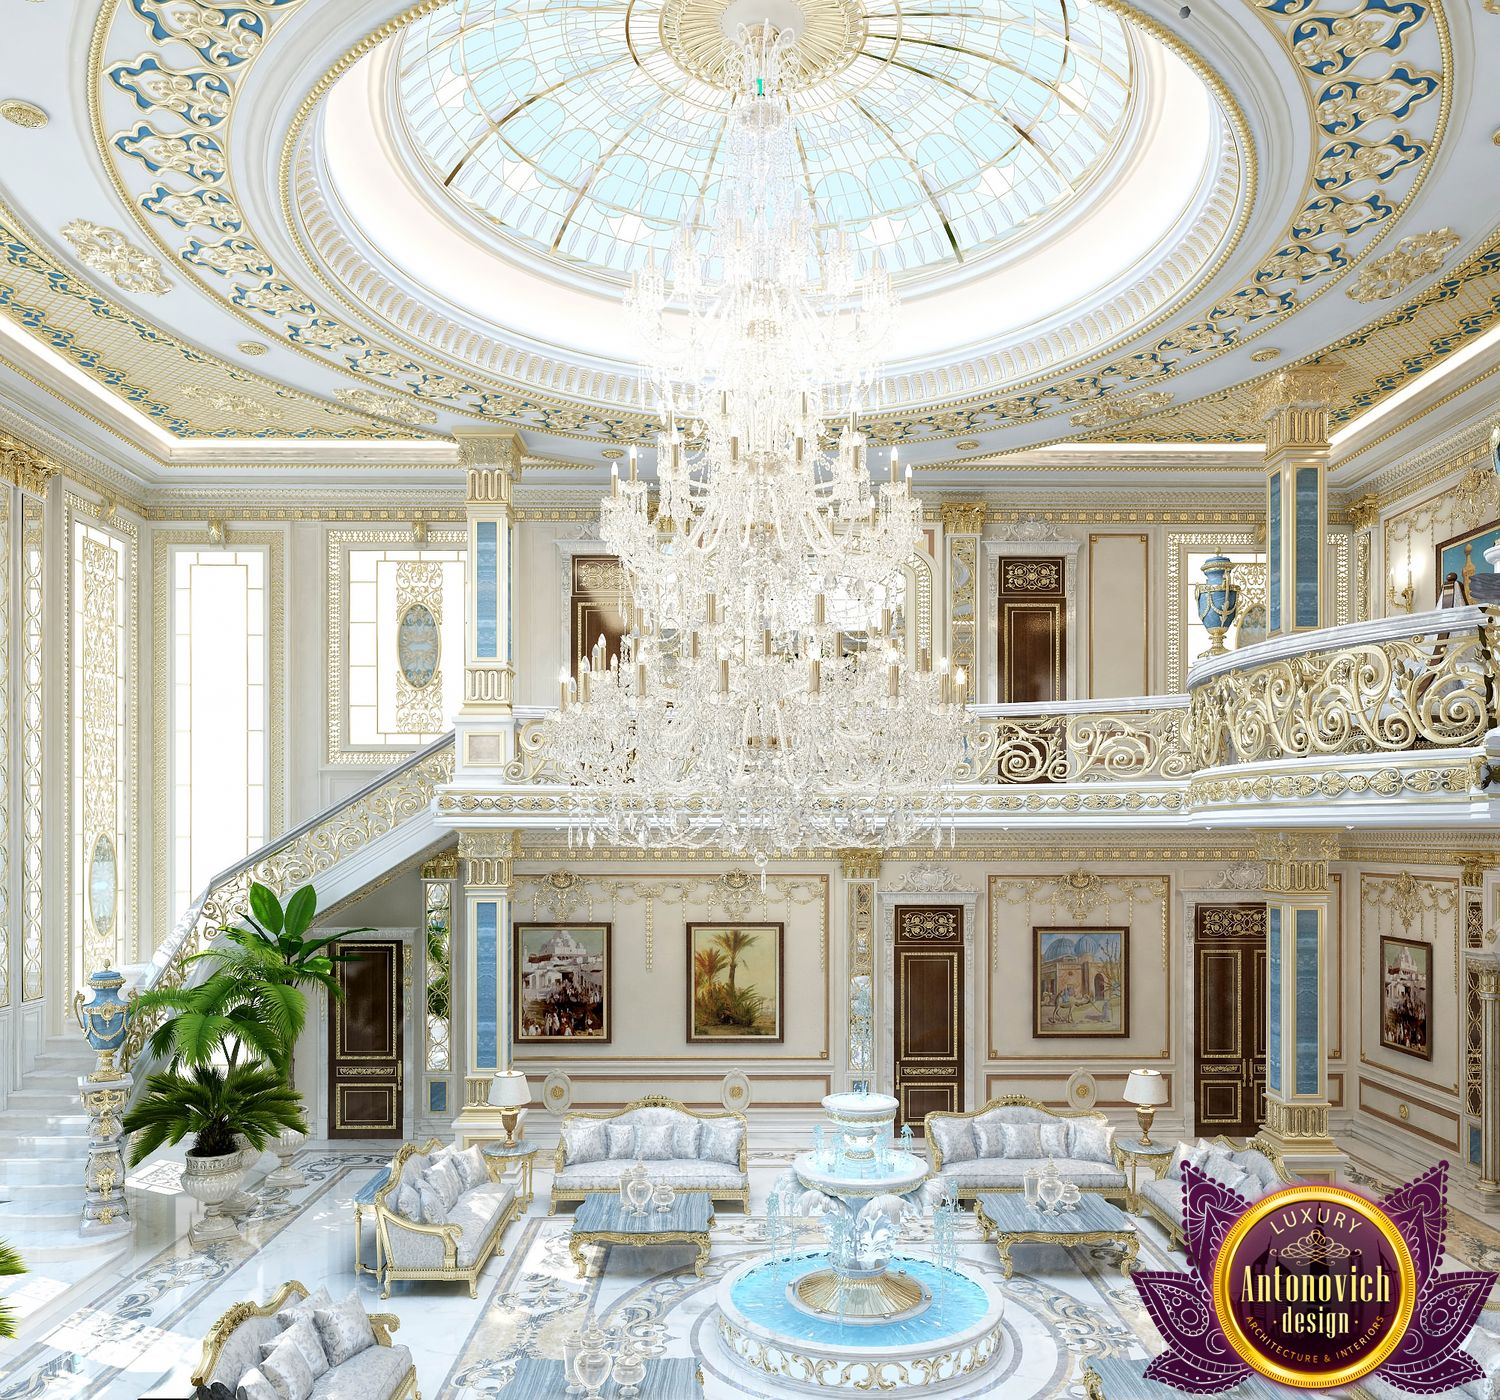 Katrina Antonovich Luxury Interior Design: Nigeiradesign: The Best Interior Design Ideas By Katrina